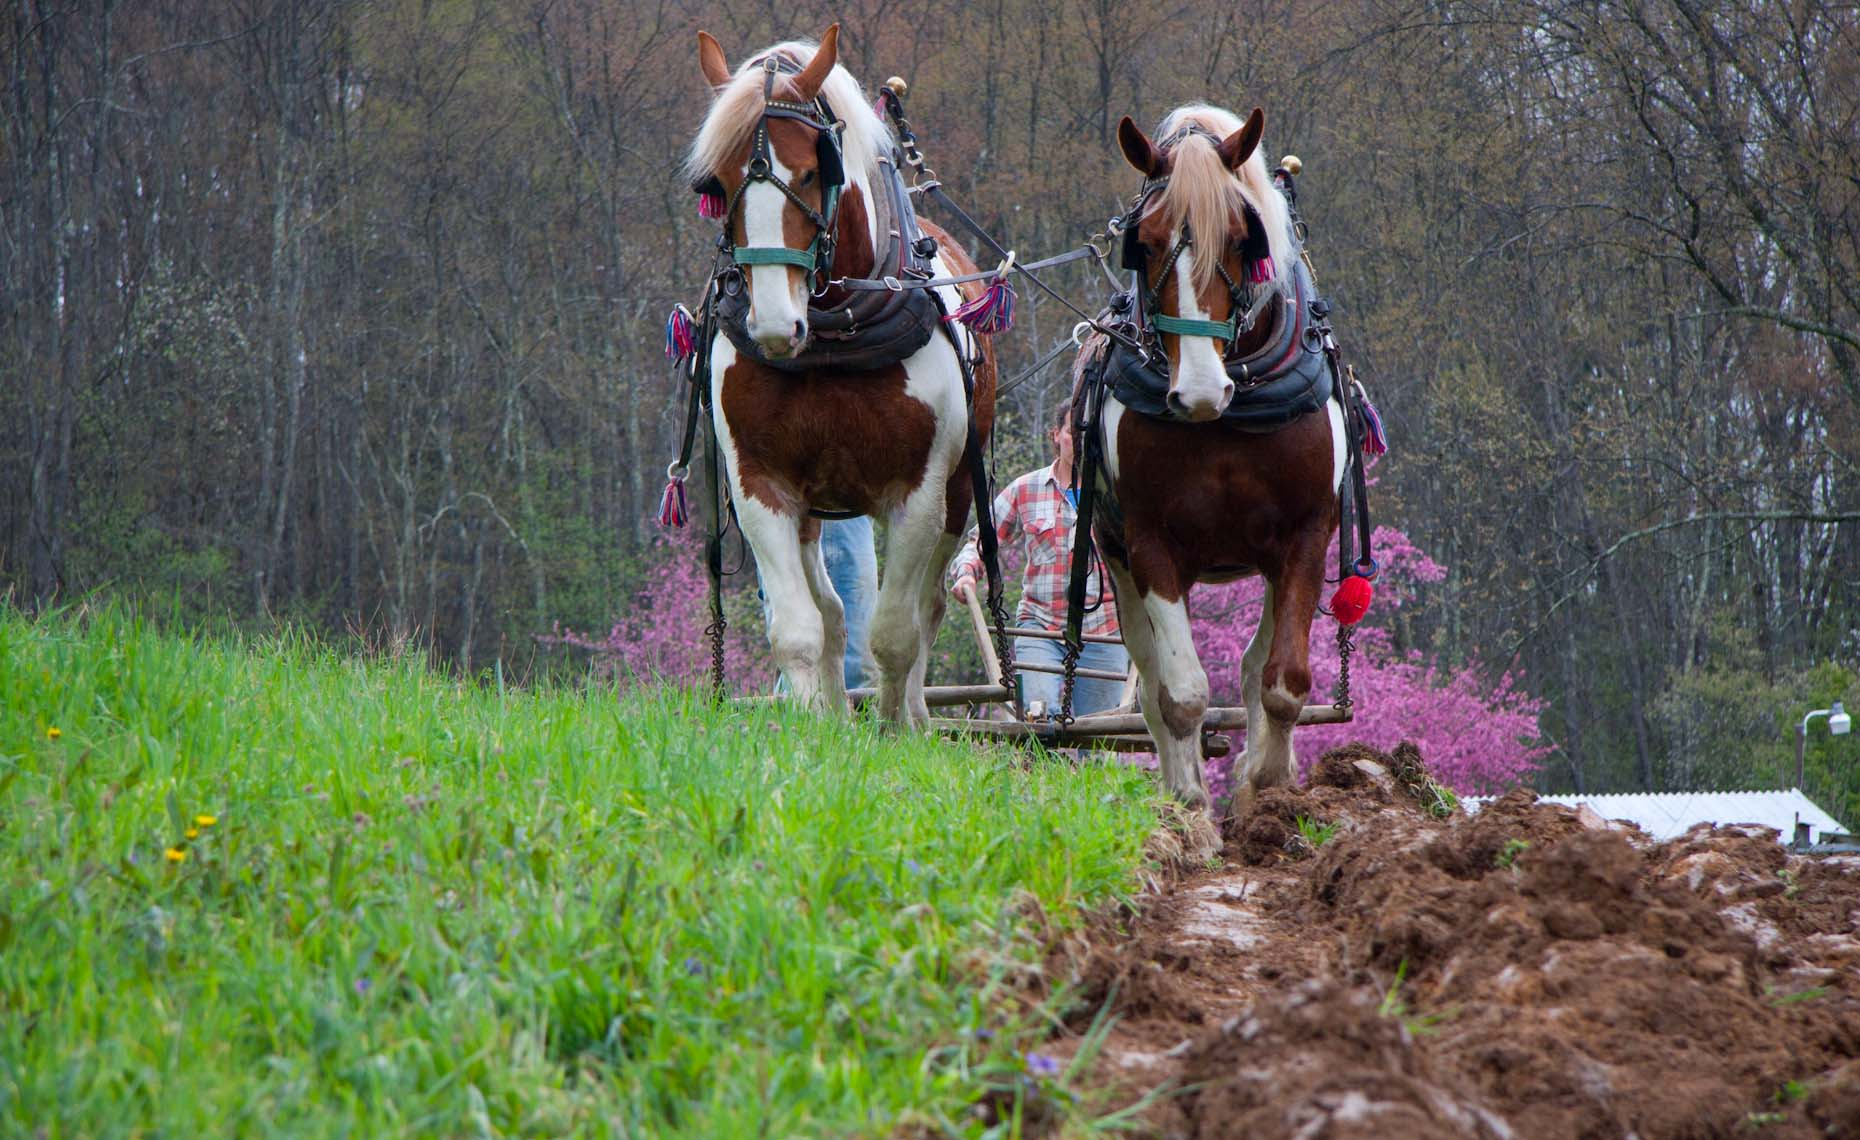 Horse plowing